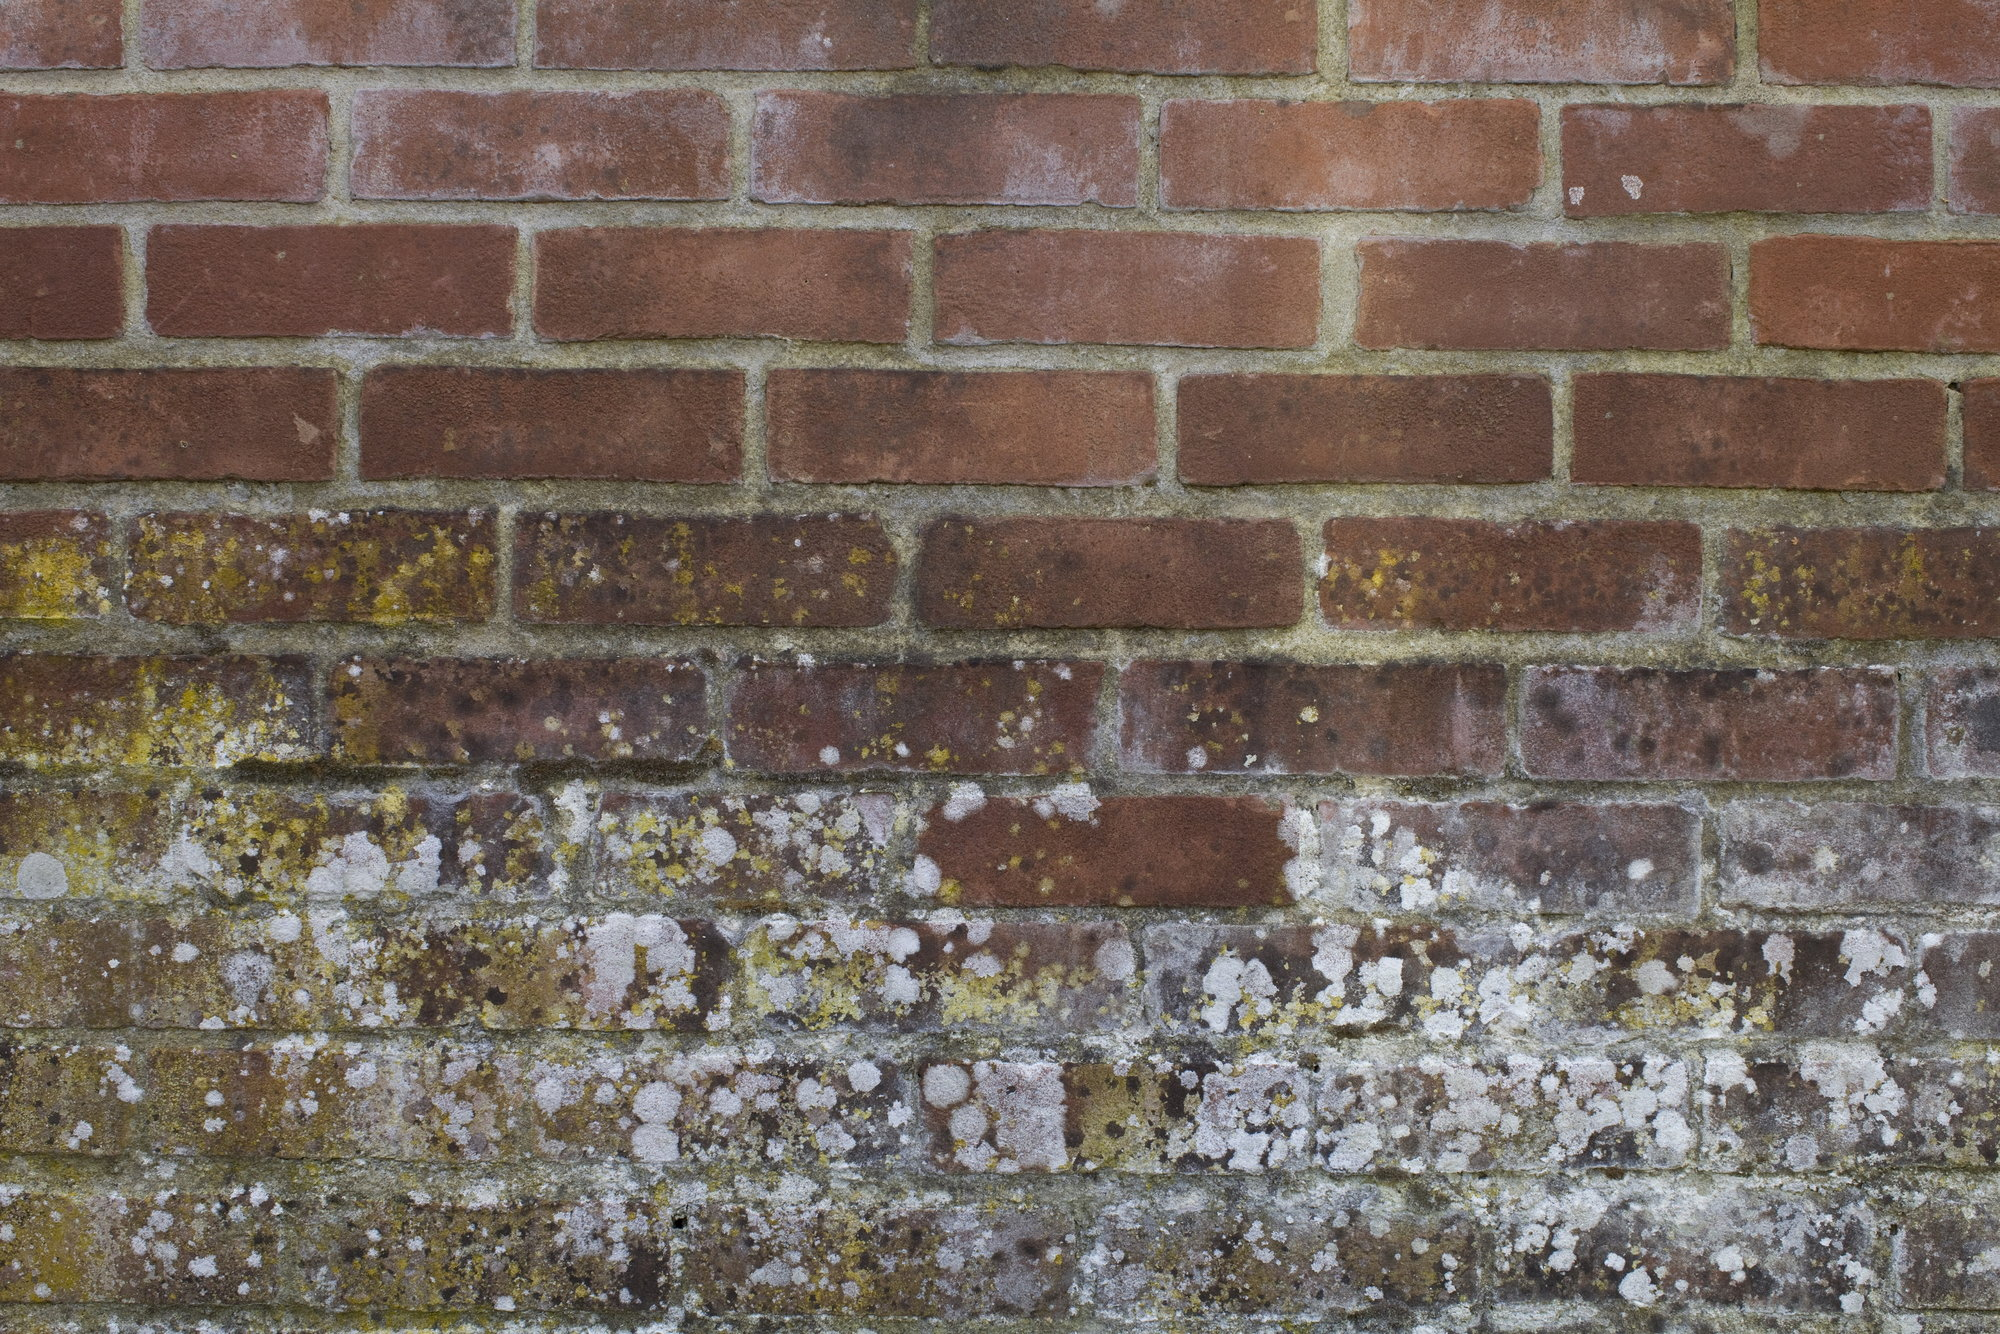 How To Clean Mold Off Brick Doityourself Com